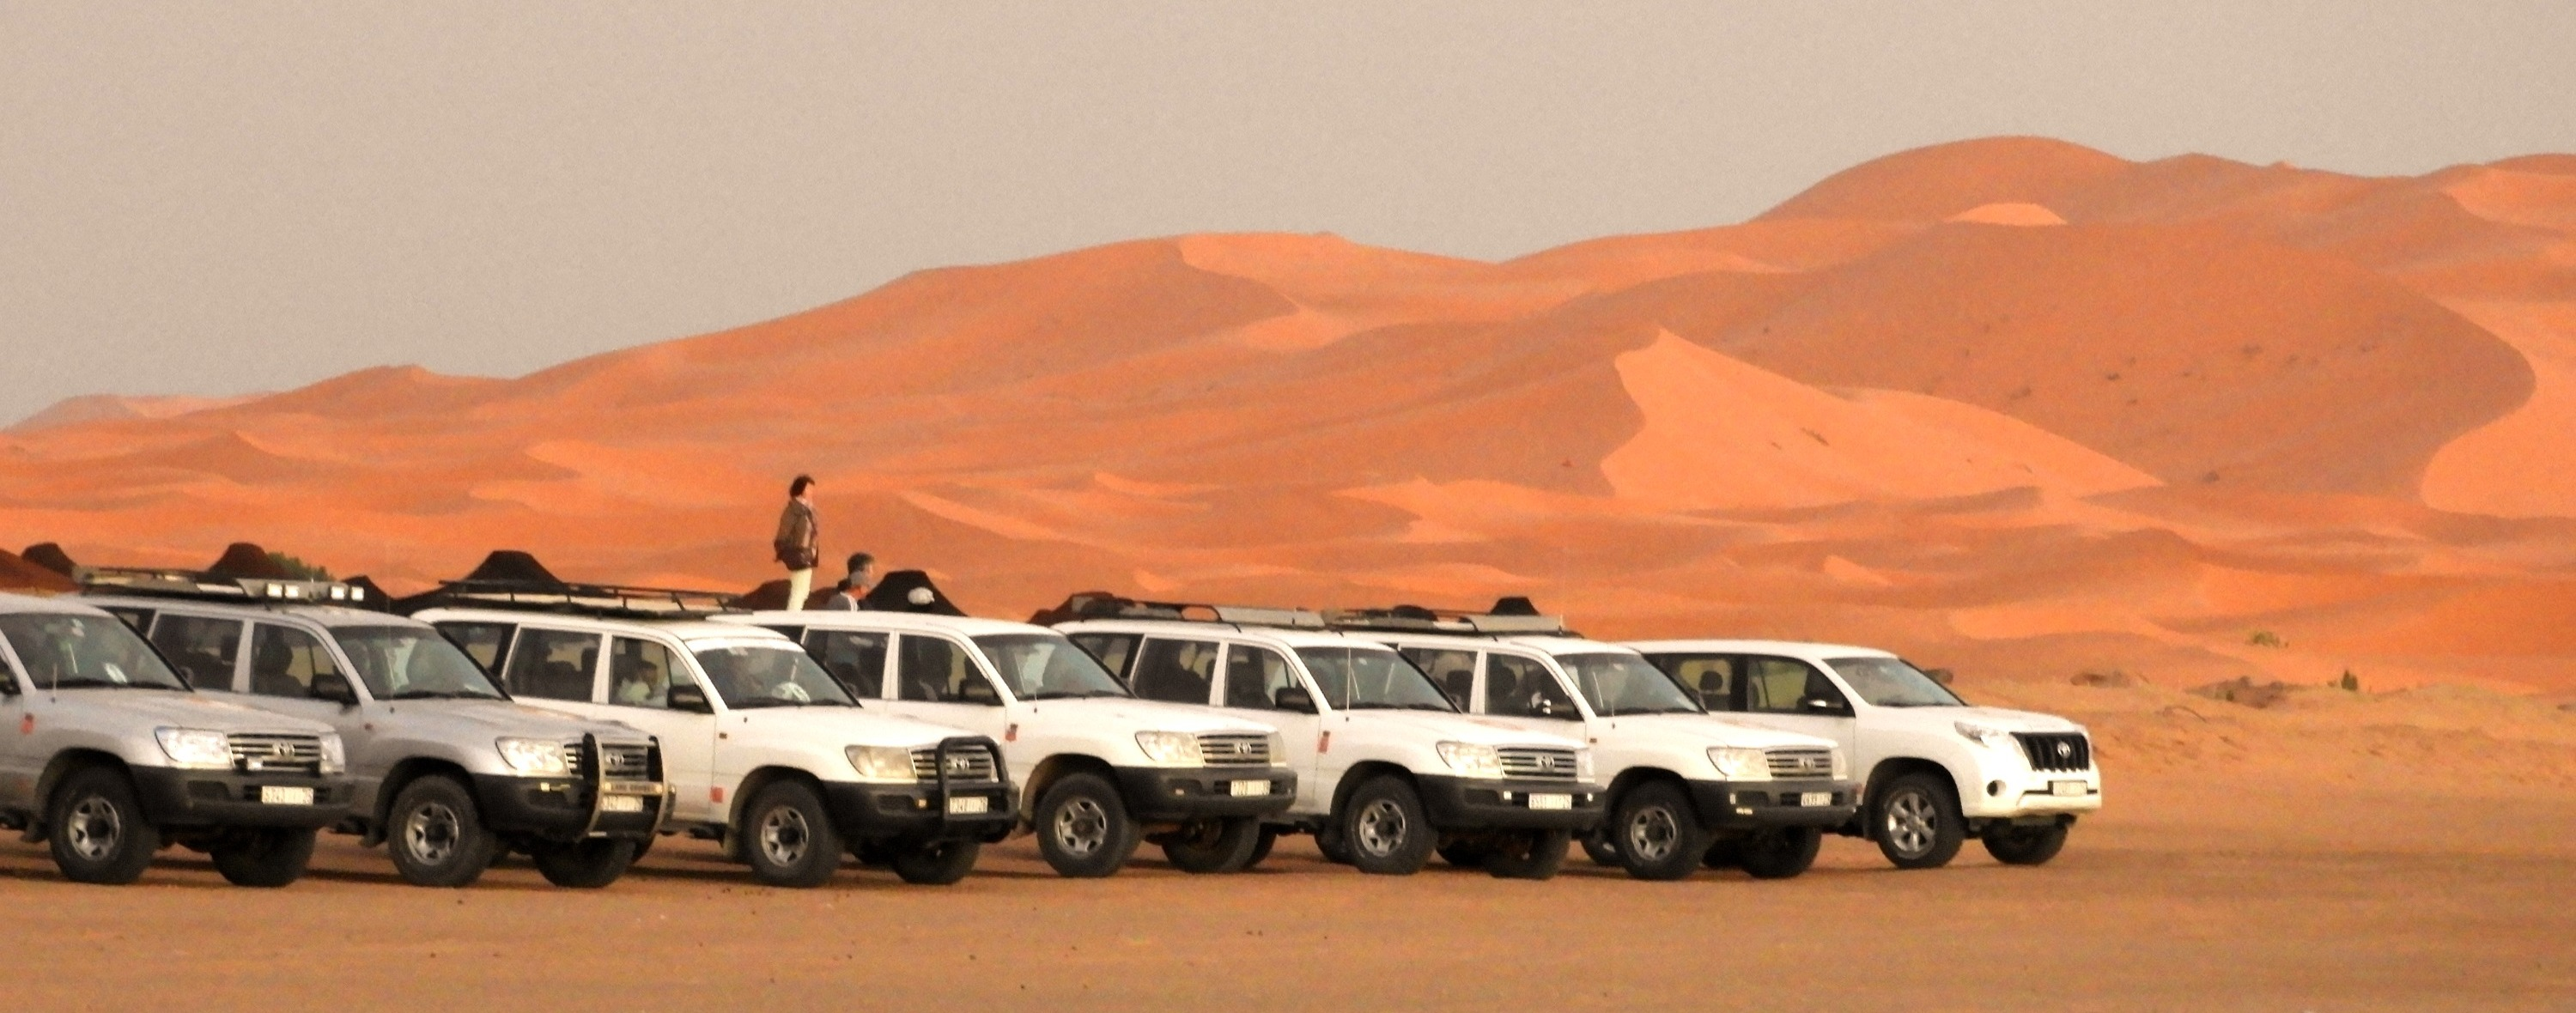 FOUR WEEHL DRIVER IN DESERT OF MERZOUGA